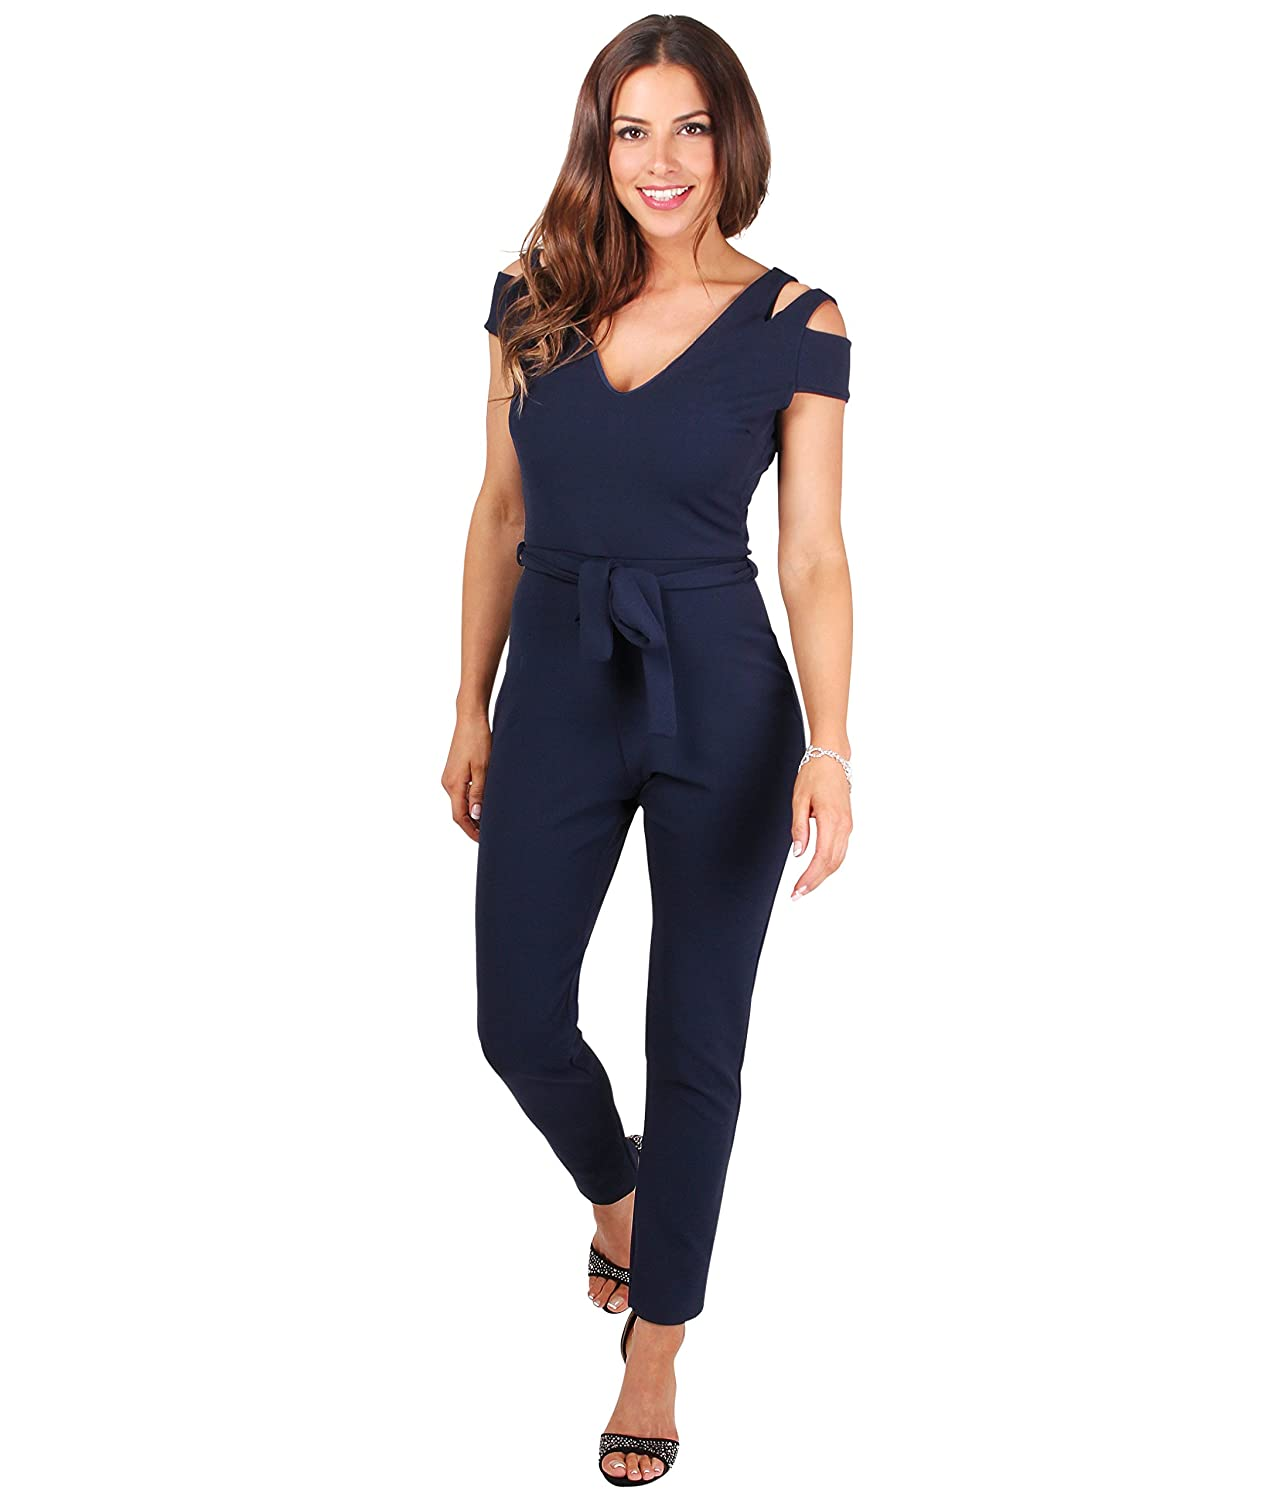 Navy Medium KRISP Women Cut Out Shoulder Jumpsuit Summer Outfit